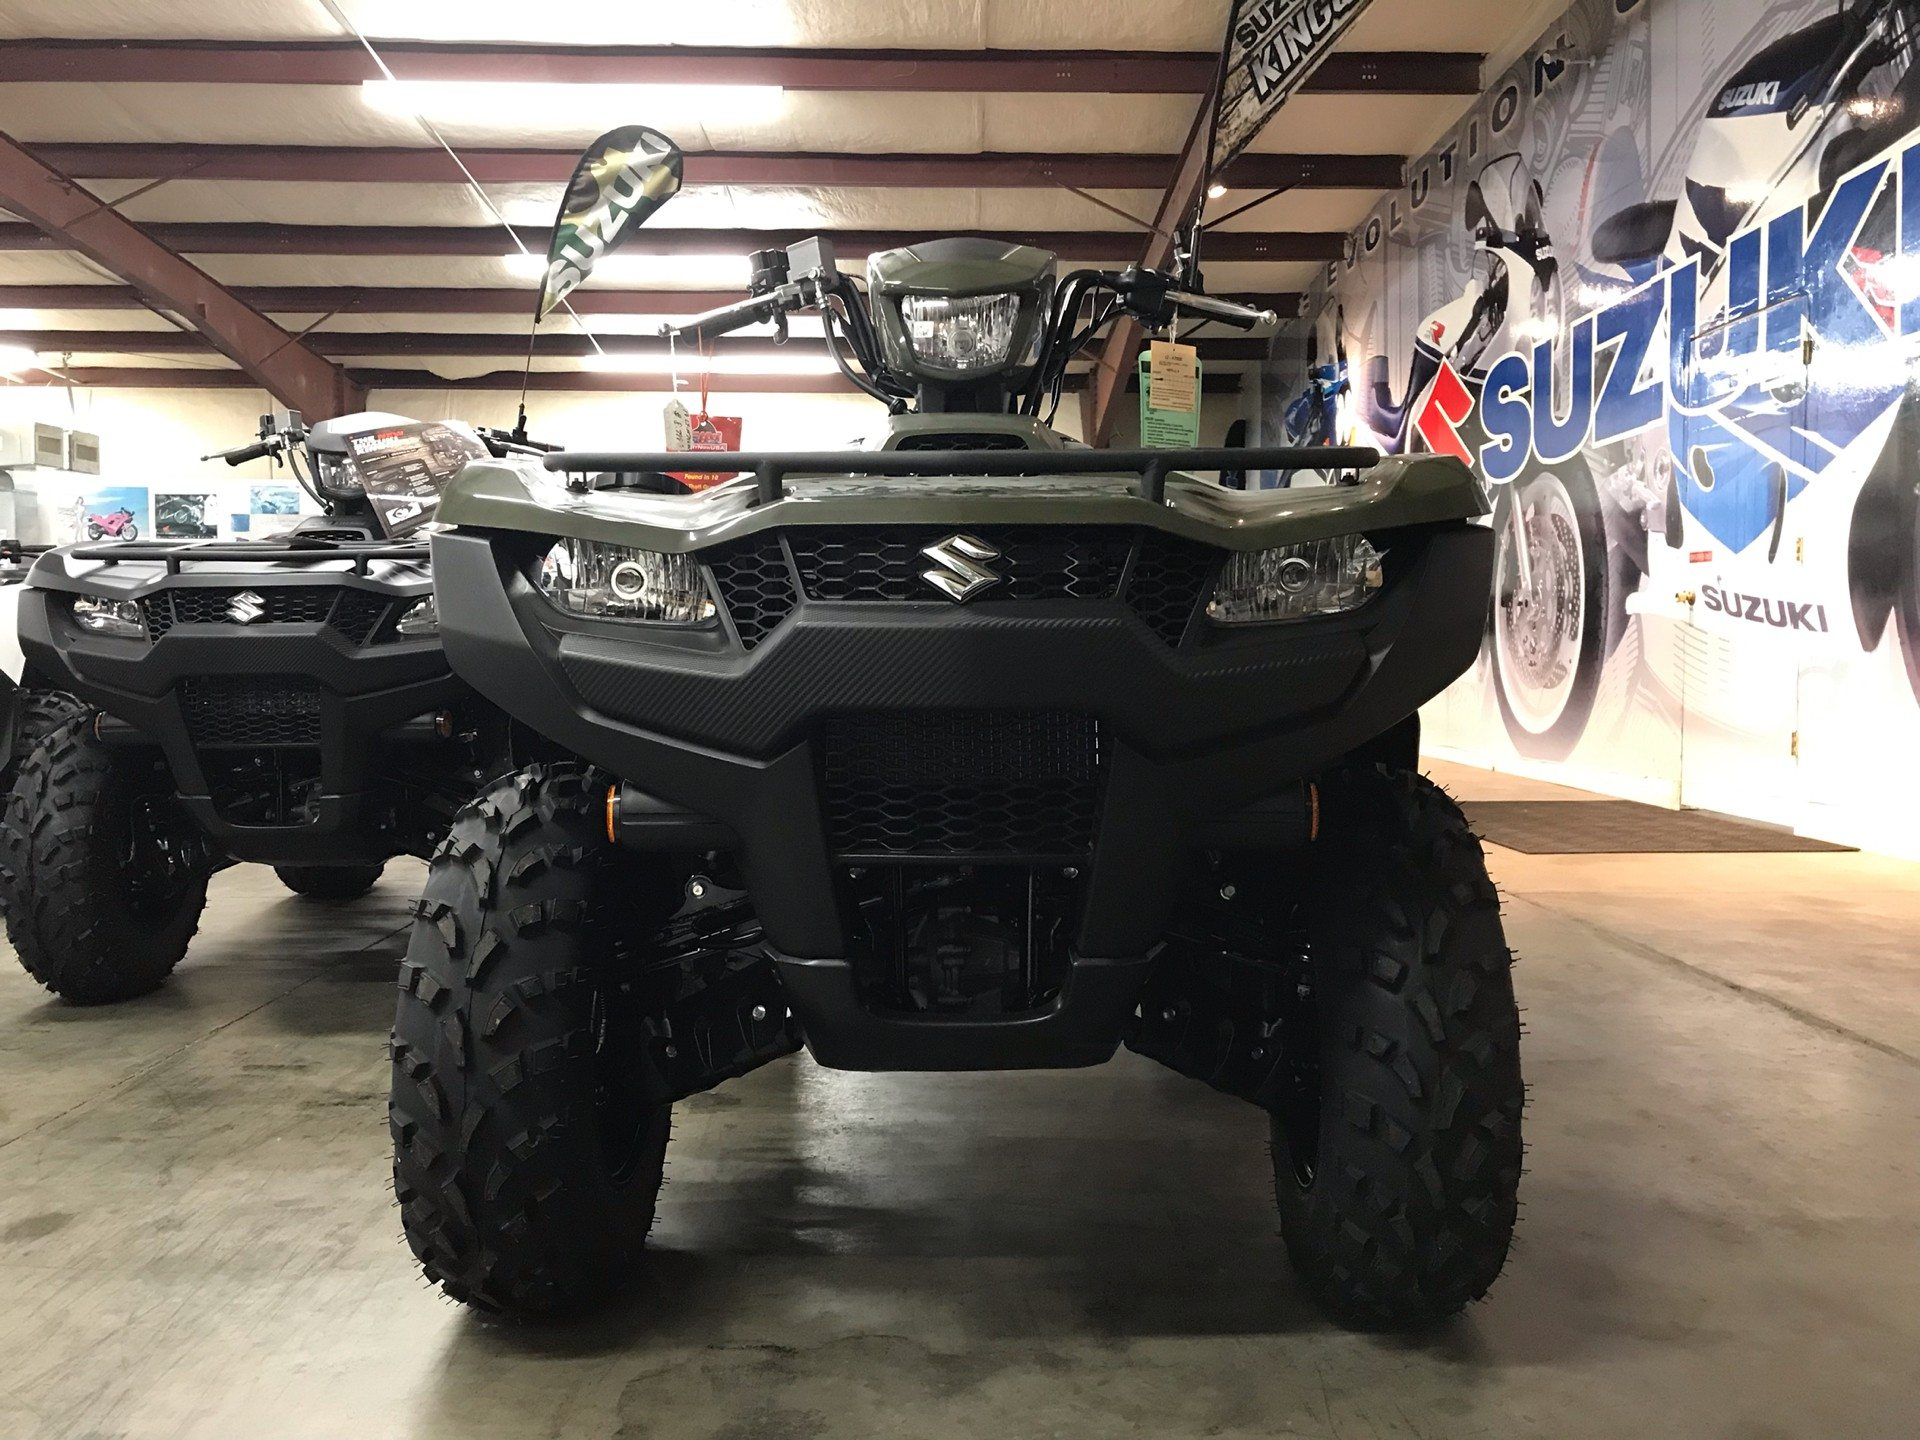 2019 Suzuki KingQuad 750AXi in Sanford, North Carolina - Photo 8